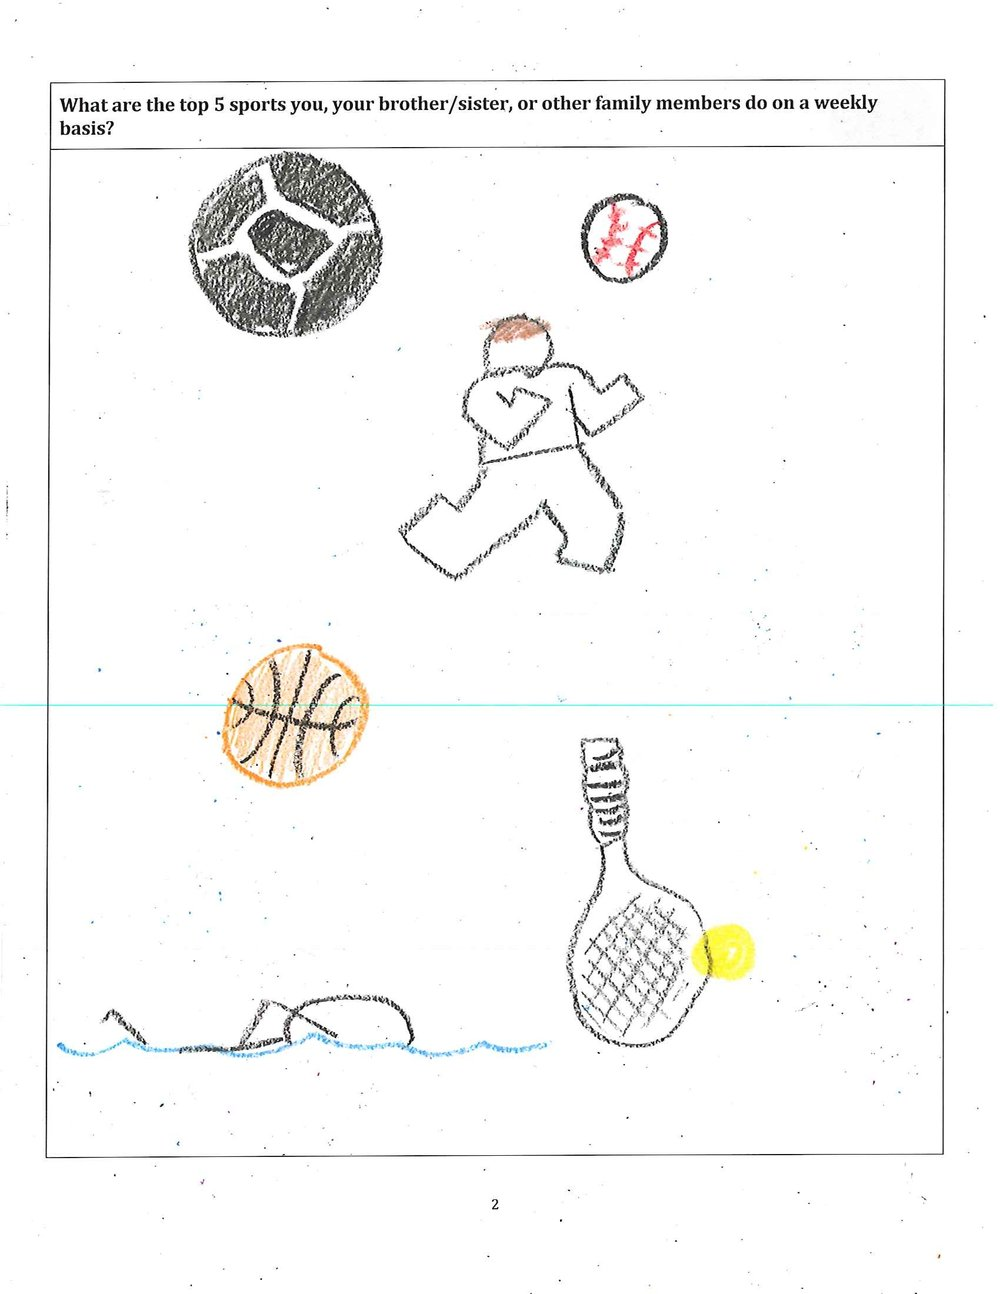 Children's Drawings_Page_4.jpg